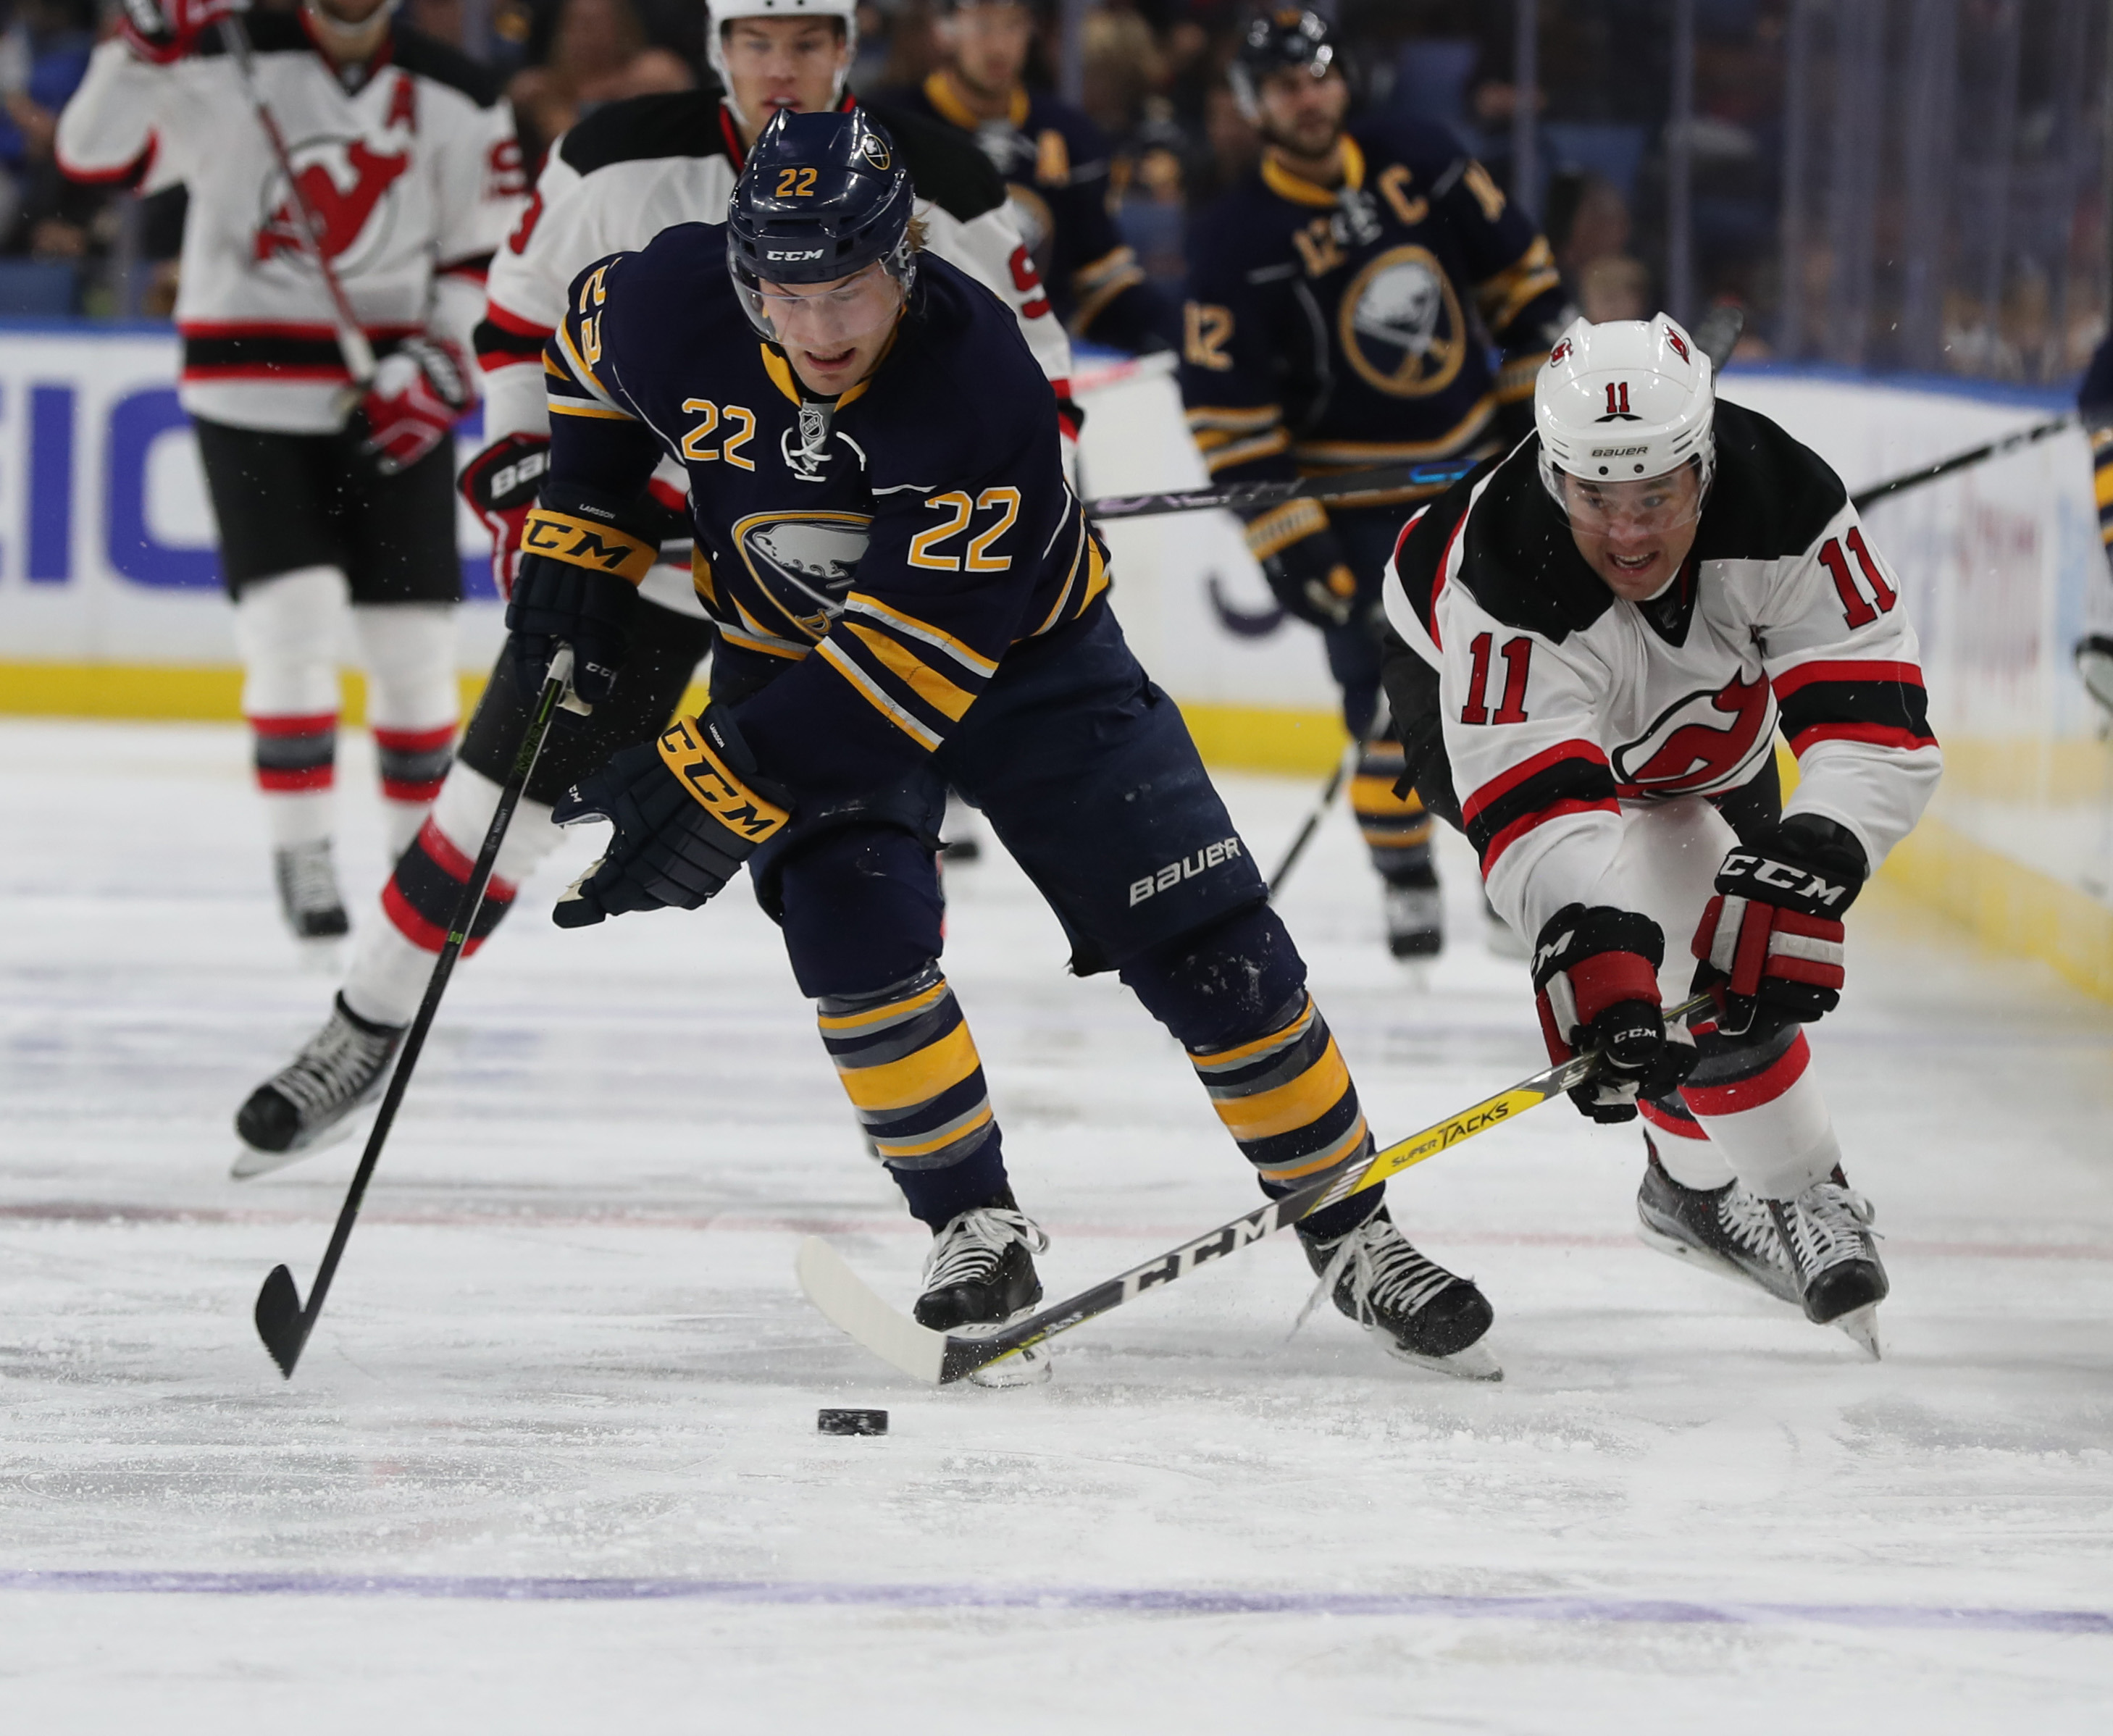 Sabres center Johan Larsson (22) battles New Jersey winger PA Parenteau (11). (James P. McCoy/Buffalo News)